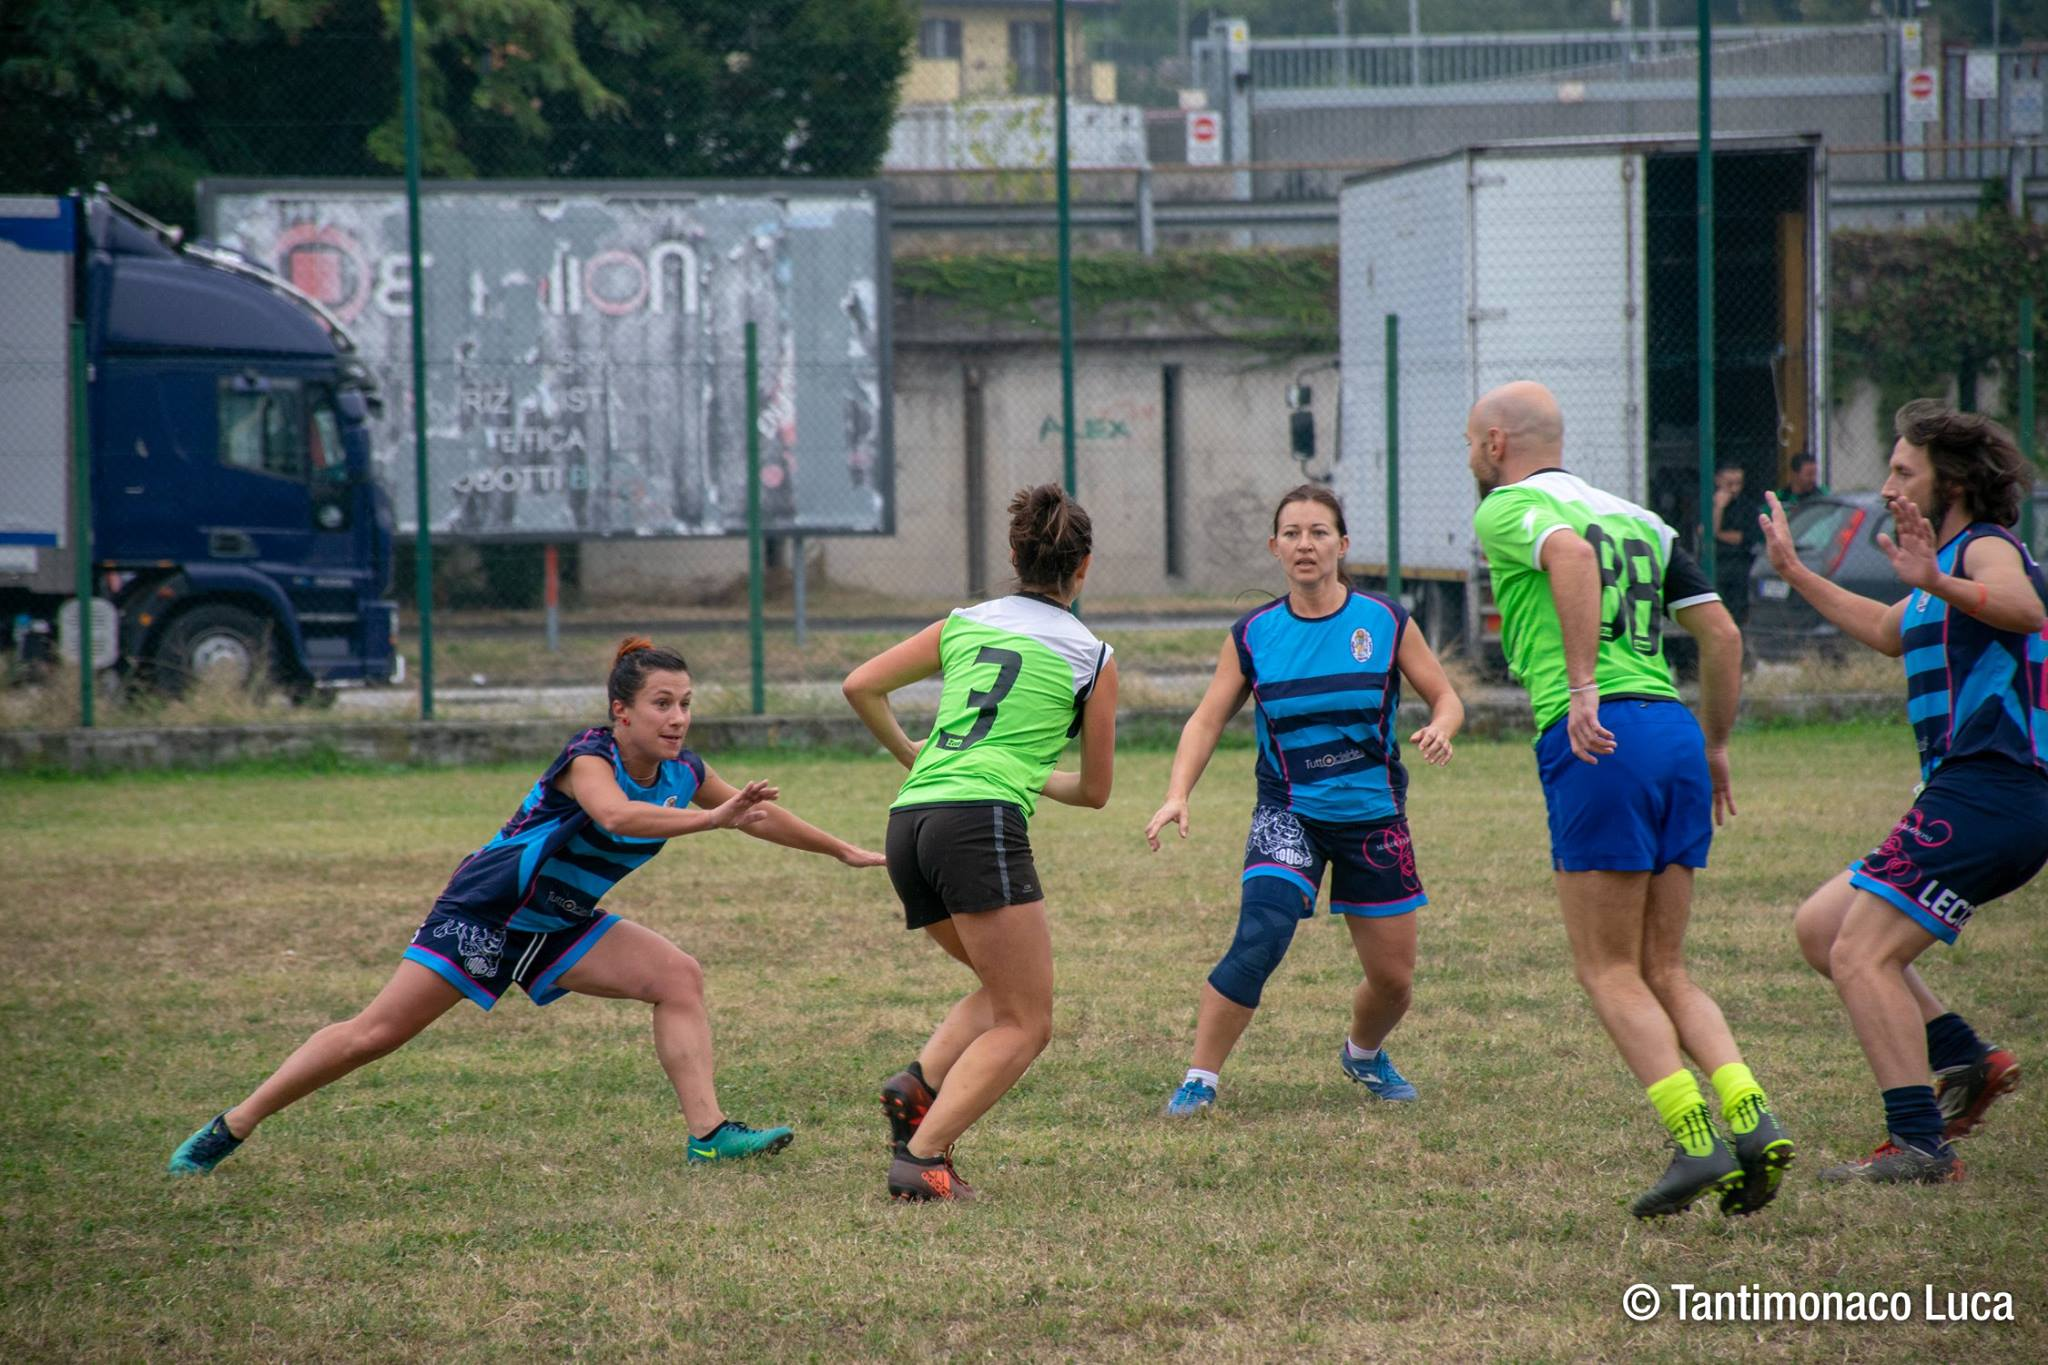 rugby touch lecco&tocco 7 ottobre 2018 (9)